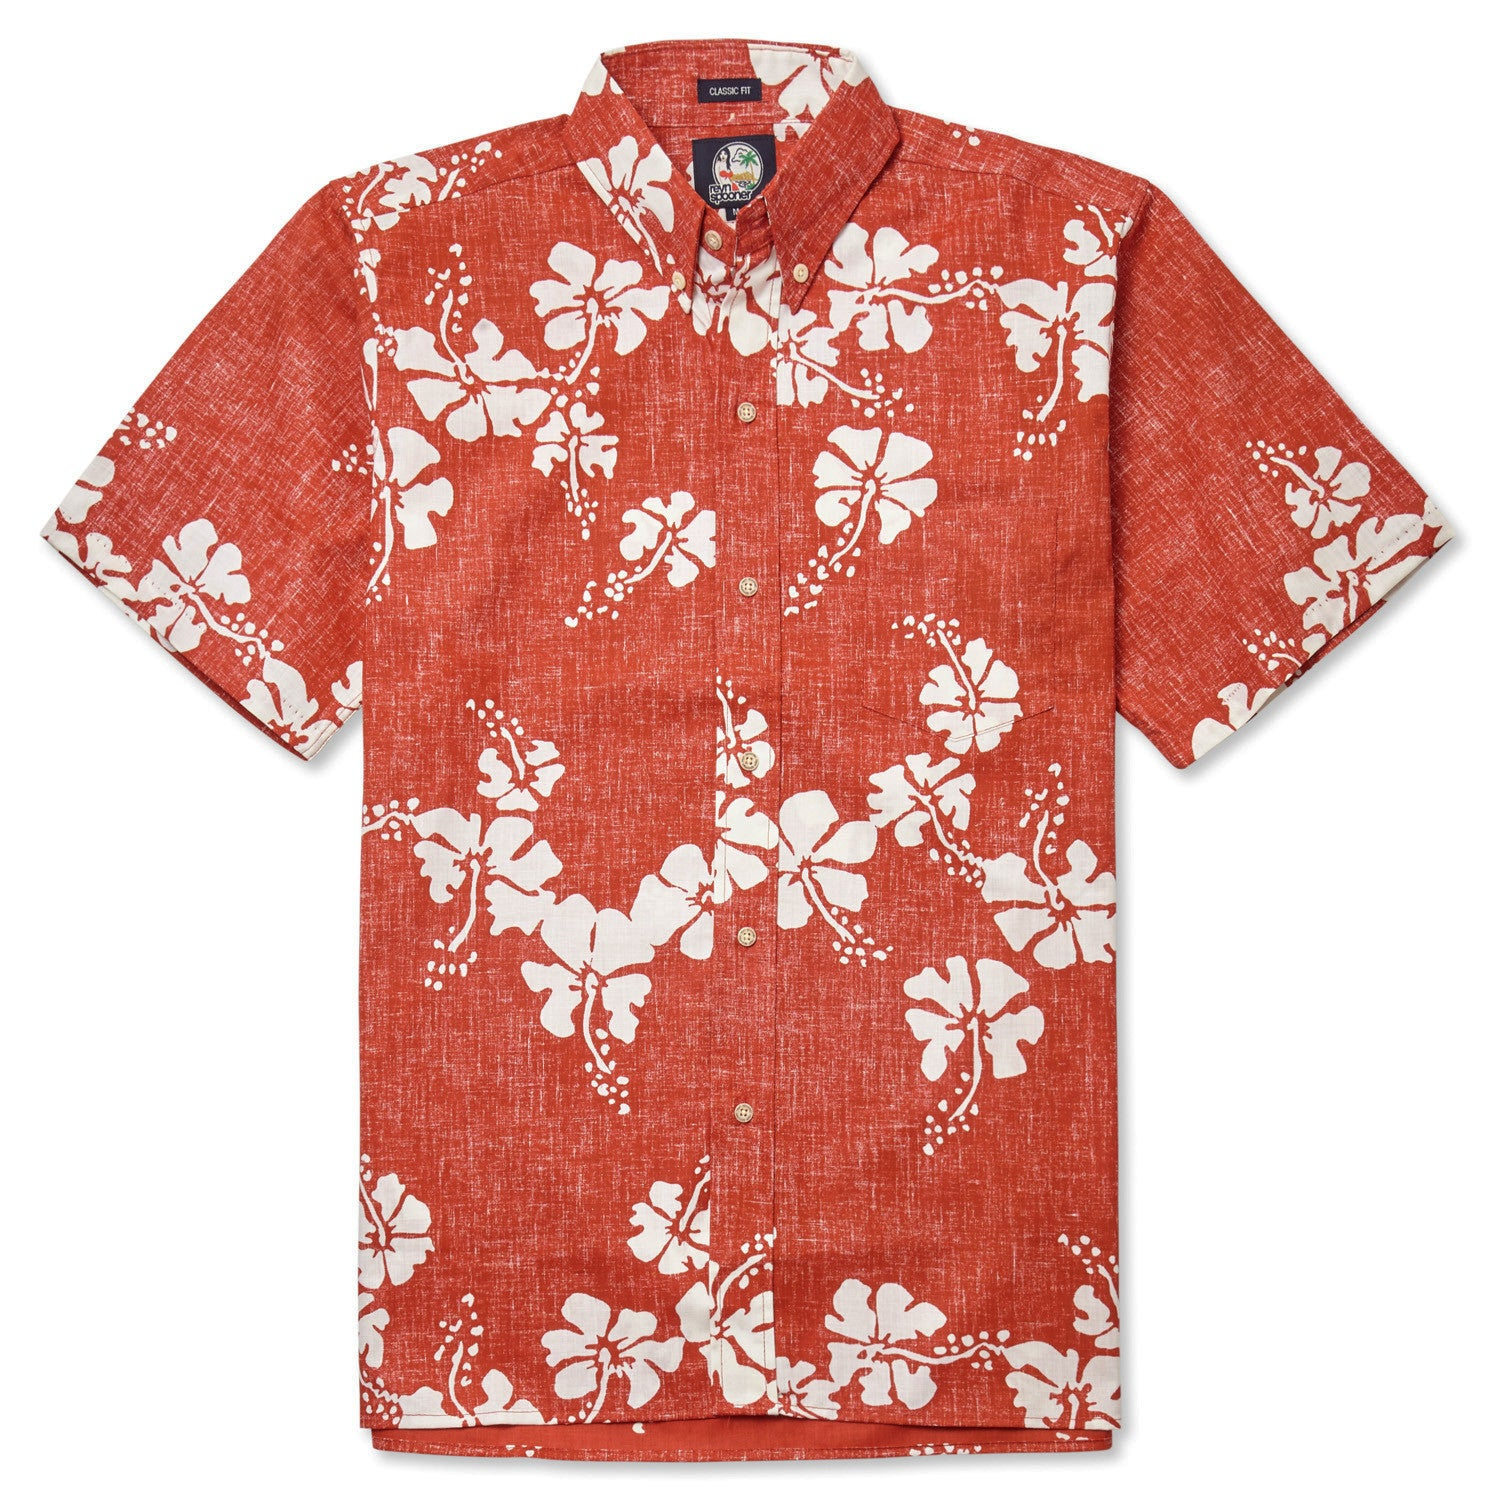 50Th State Flower / Classic Fit Button Front Shirt, Cotton/Polyester, For Men, 2XL, Cardinal Red, From Reyn Spooner